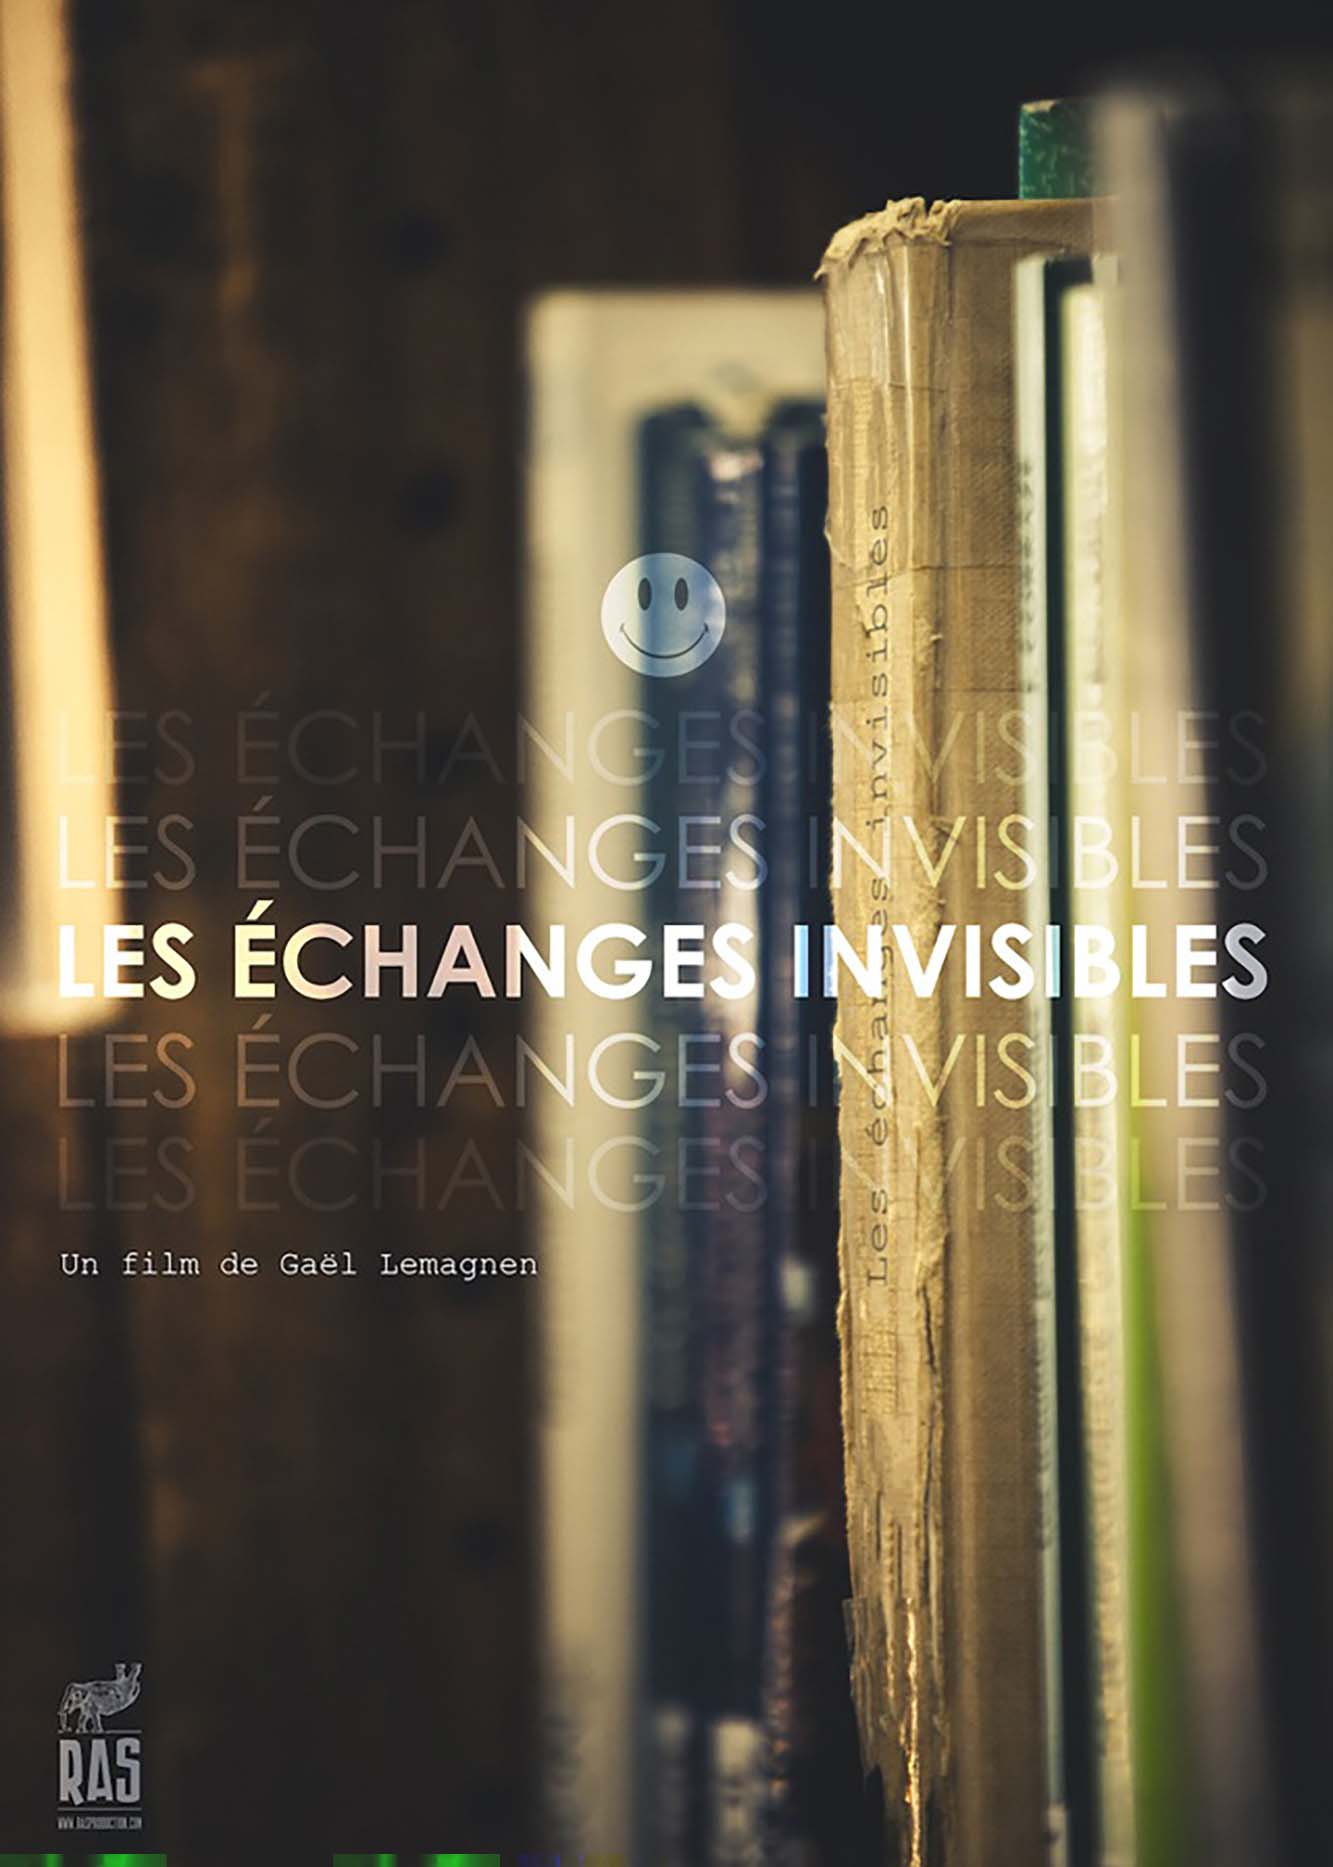 Les echanges invisibles